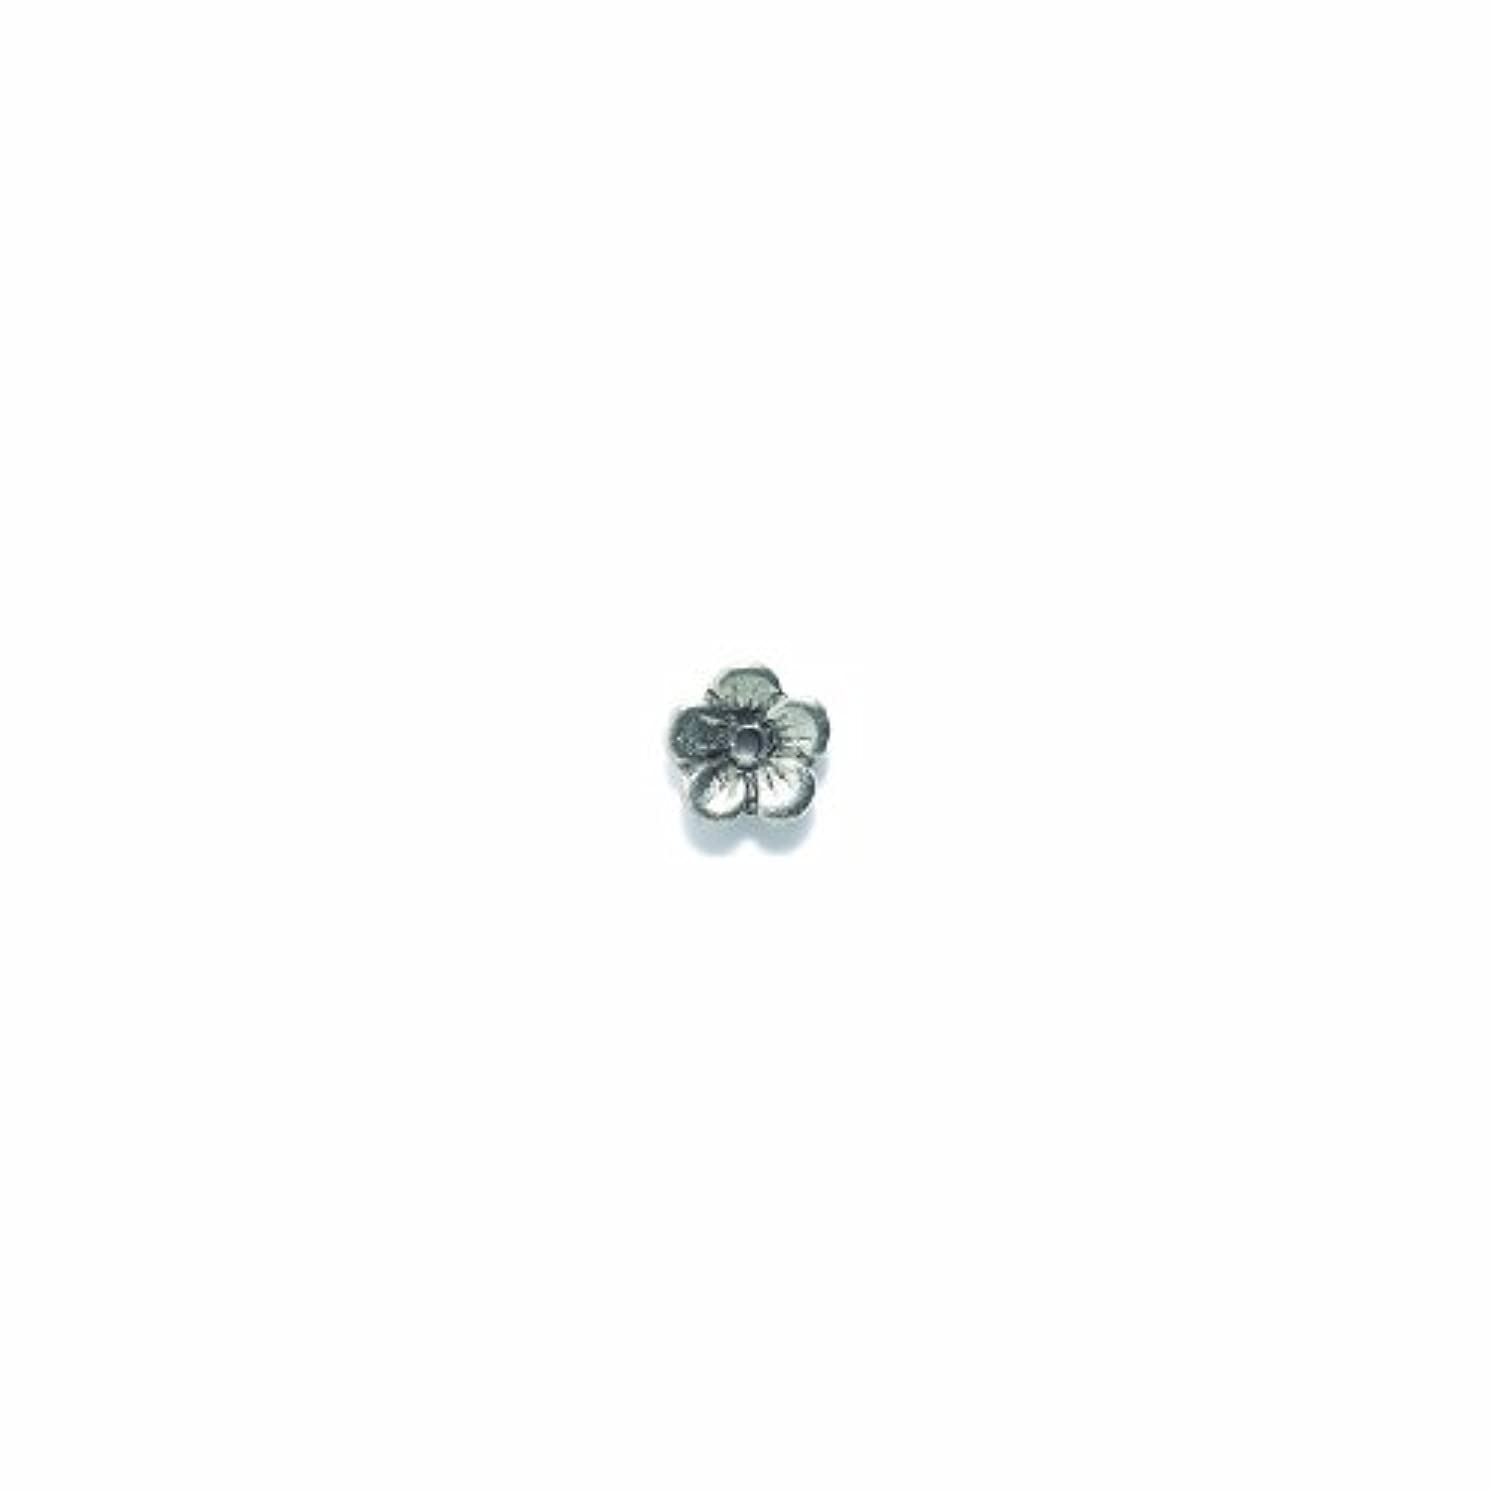 Shipwreck Beads Pewter Flower Center-Hole, Metallic, Silver, 11mm, 8-Piece